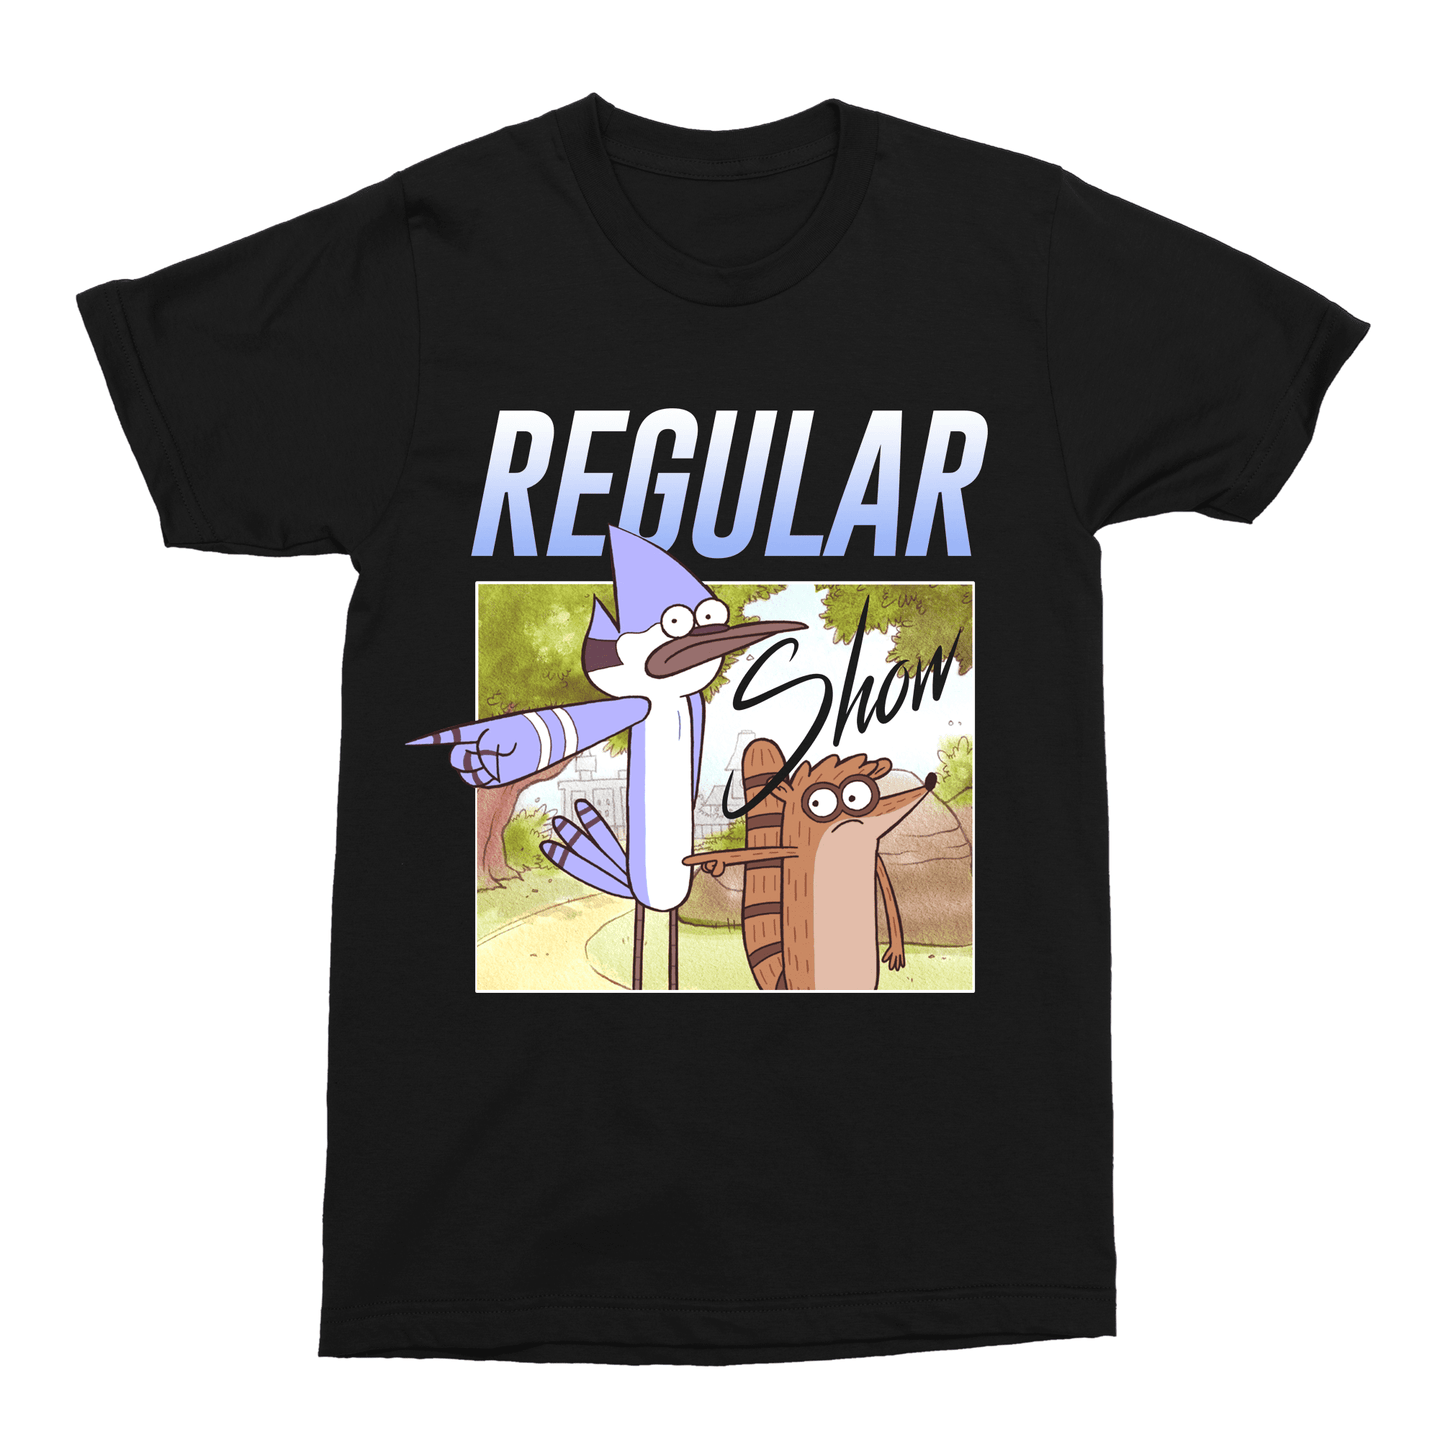 Regular Show Cartoon Unisex Vintage Throwback T-Shirt - Timeless Tees